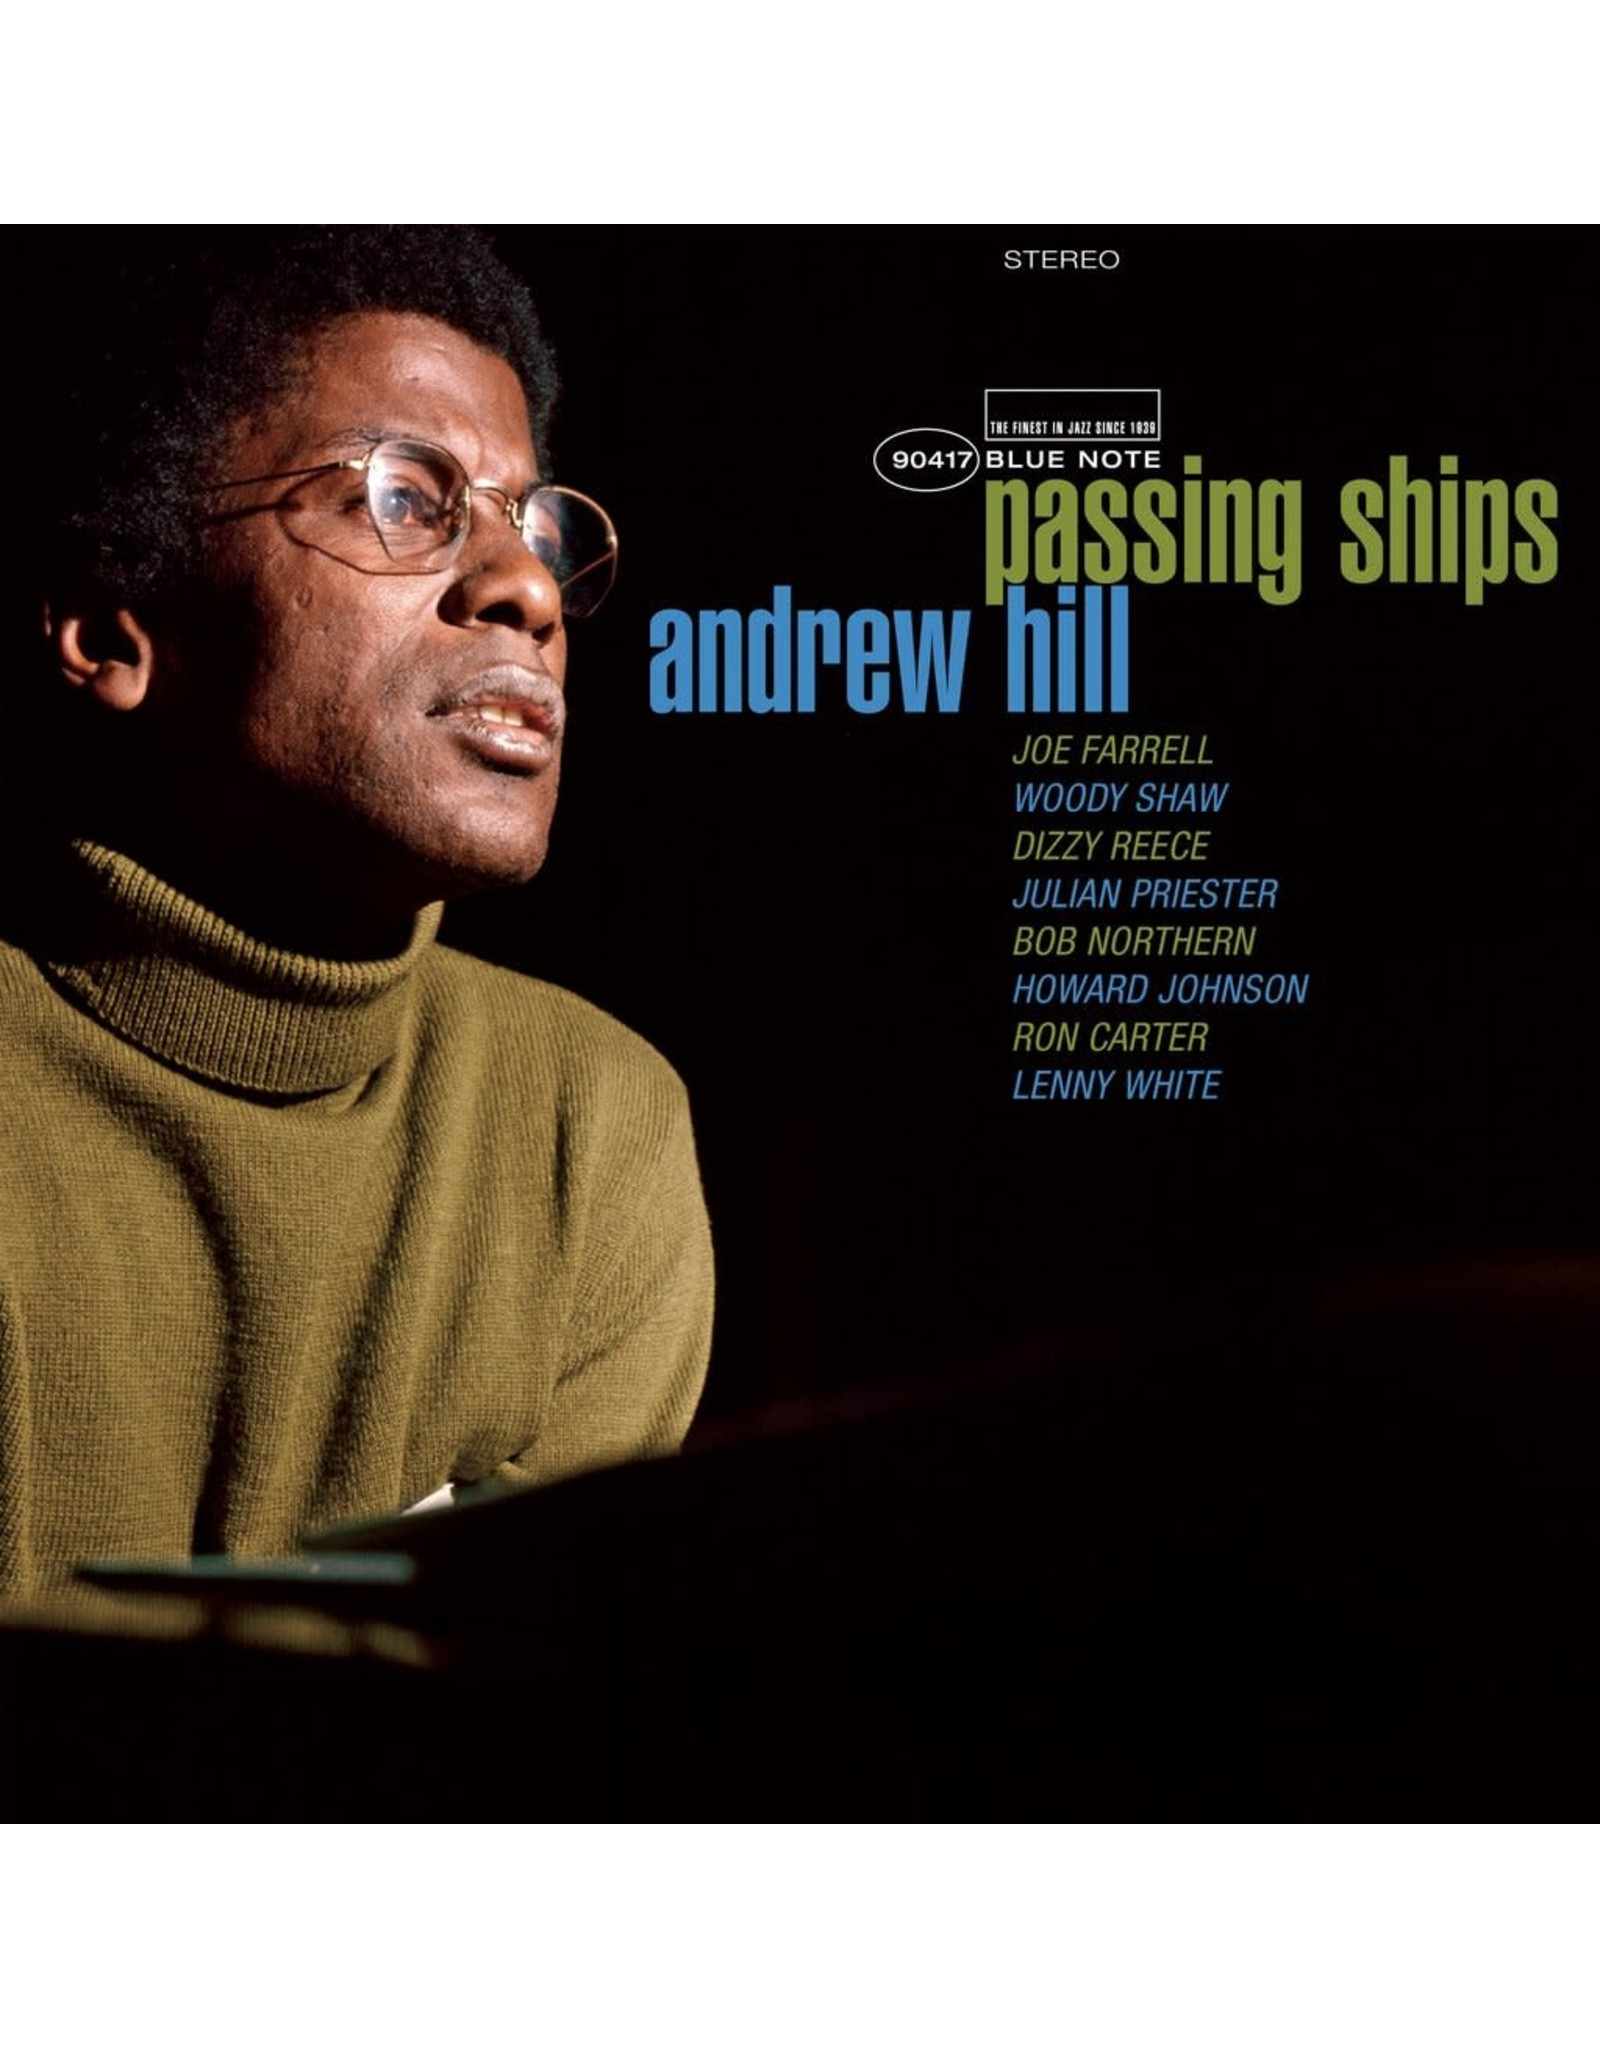 Andrew Hill - Passing Ships (Blue Note Tone Poet)